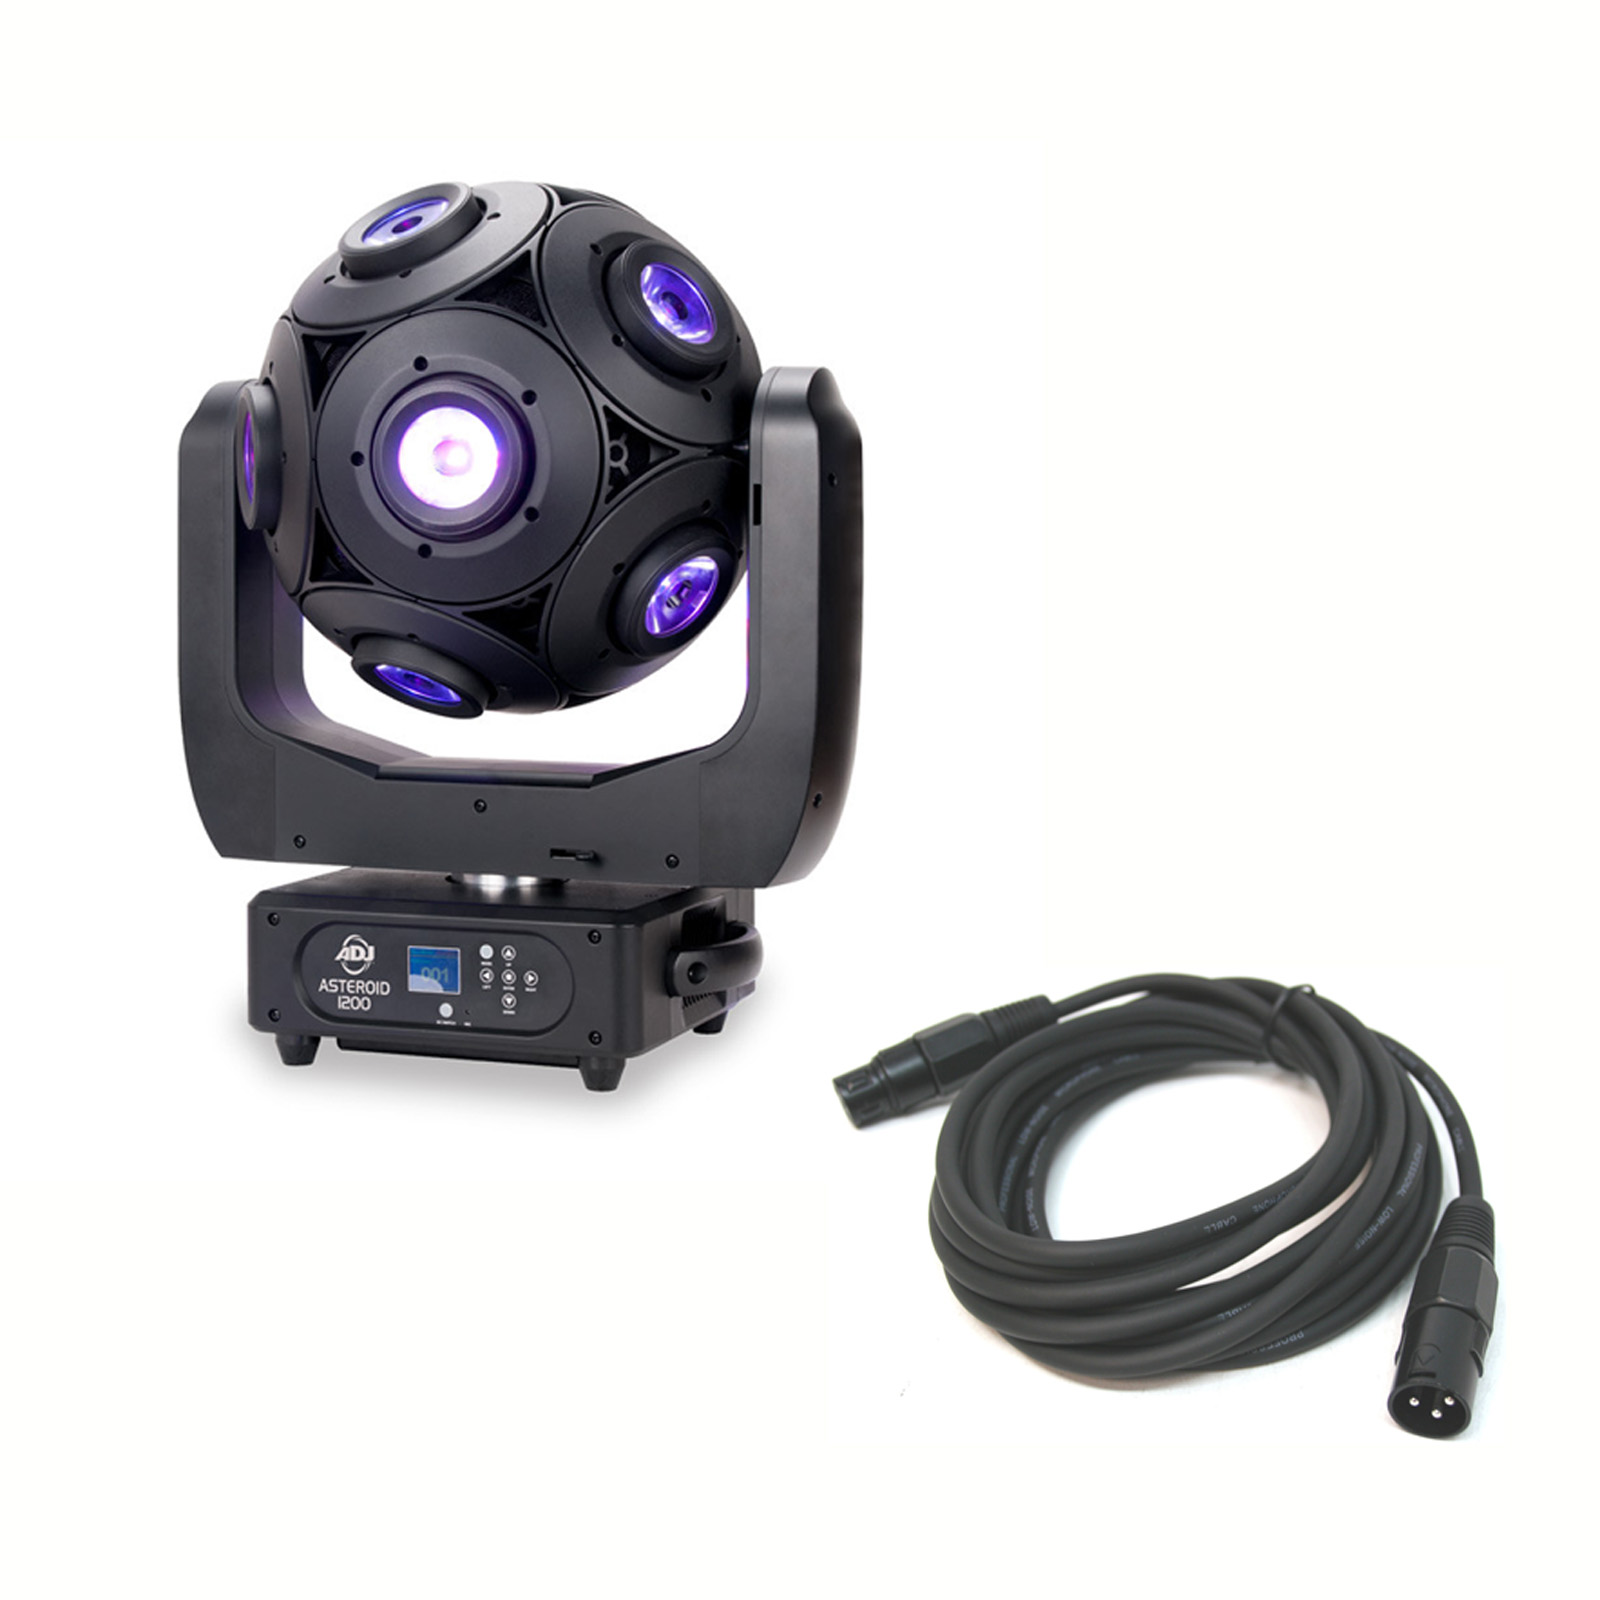 American DJ Asteriod 180W LED Centerpiece Fixture with 3 Pin DMX Control Cable